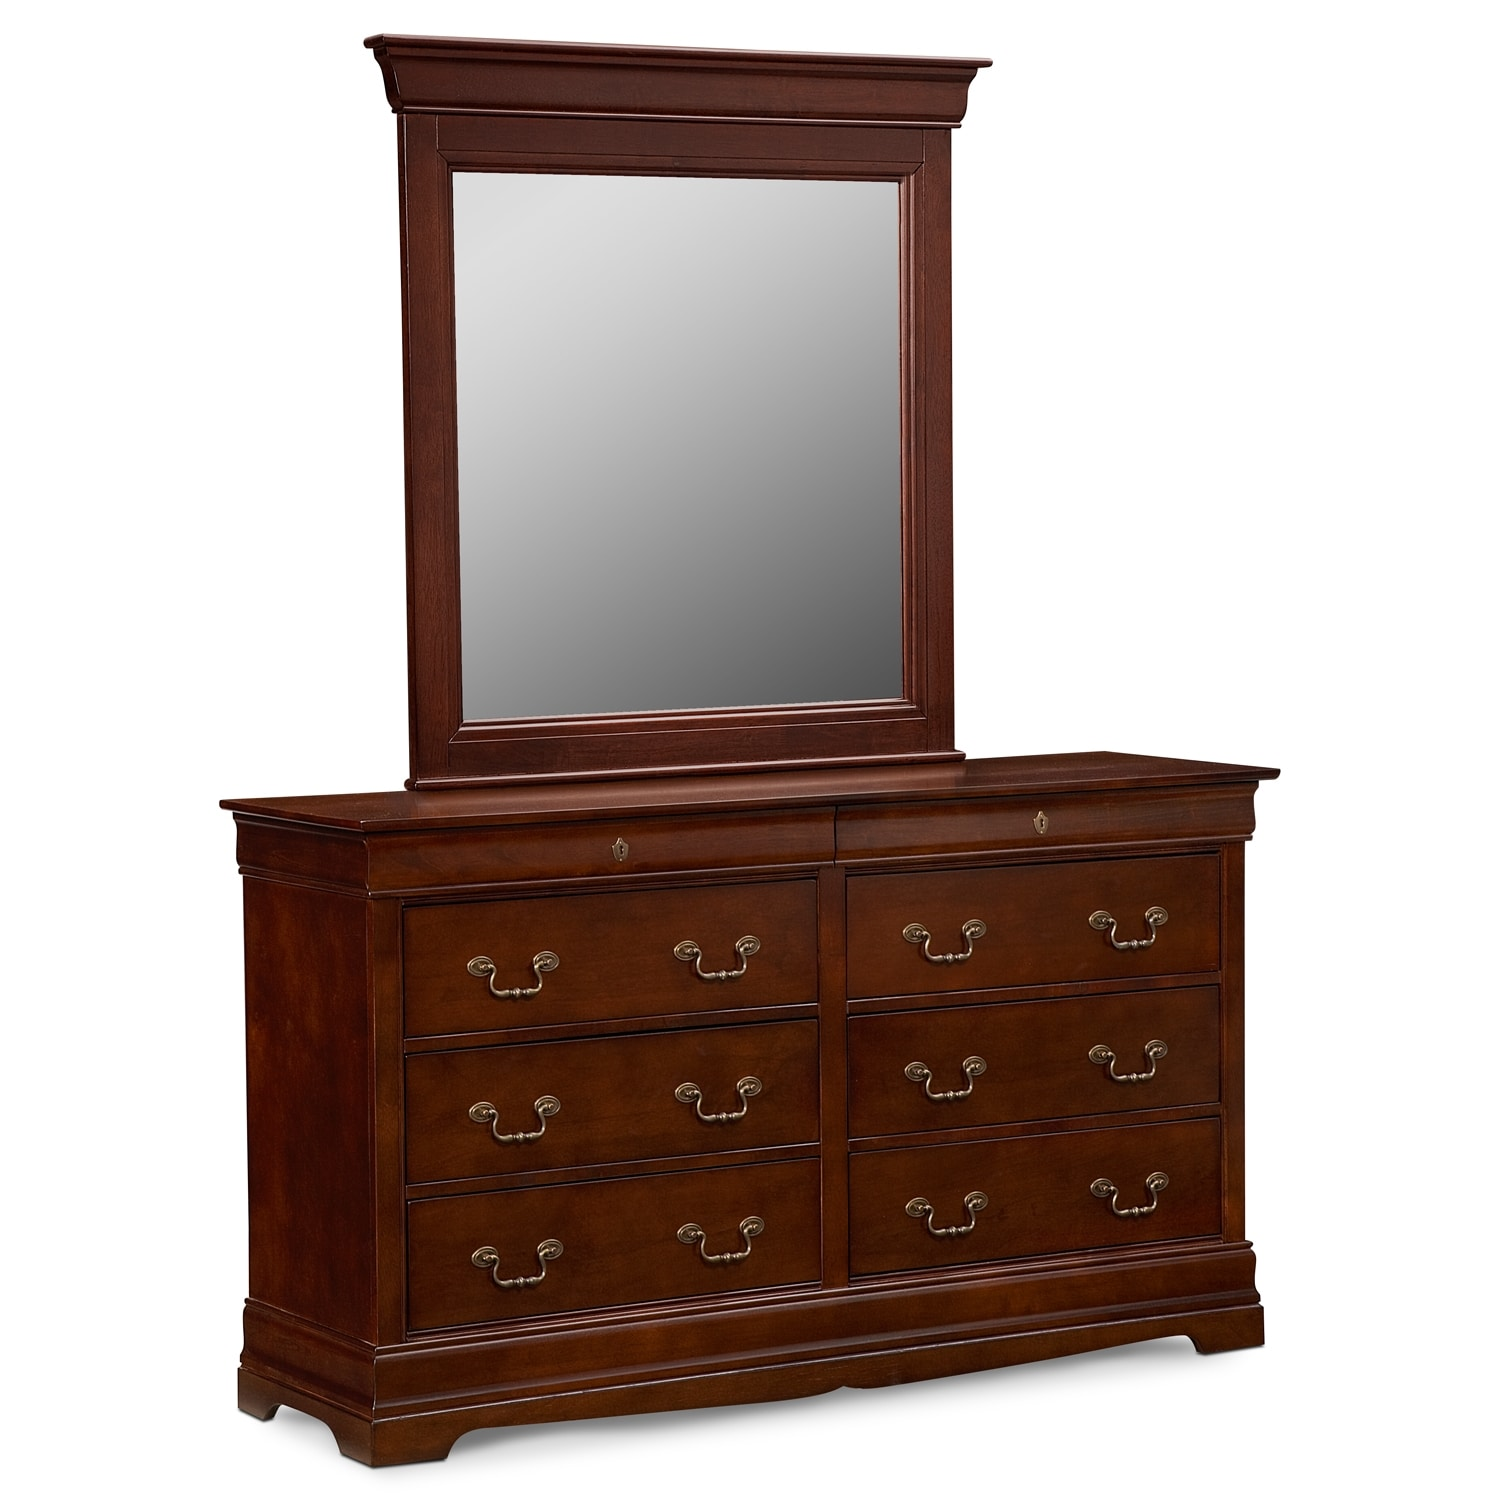 Neo Classic Cherry Dresser Mirror Value City Furniture